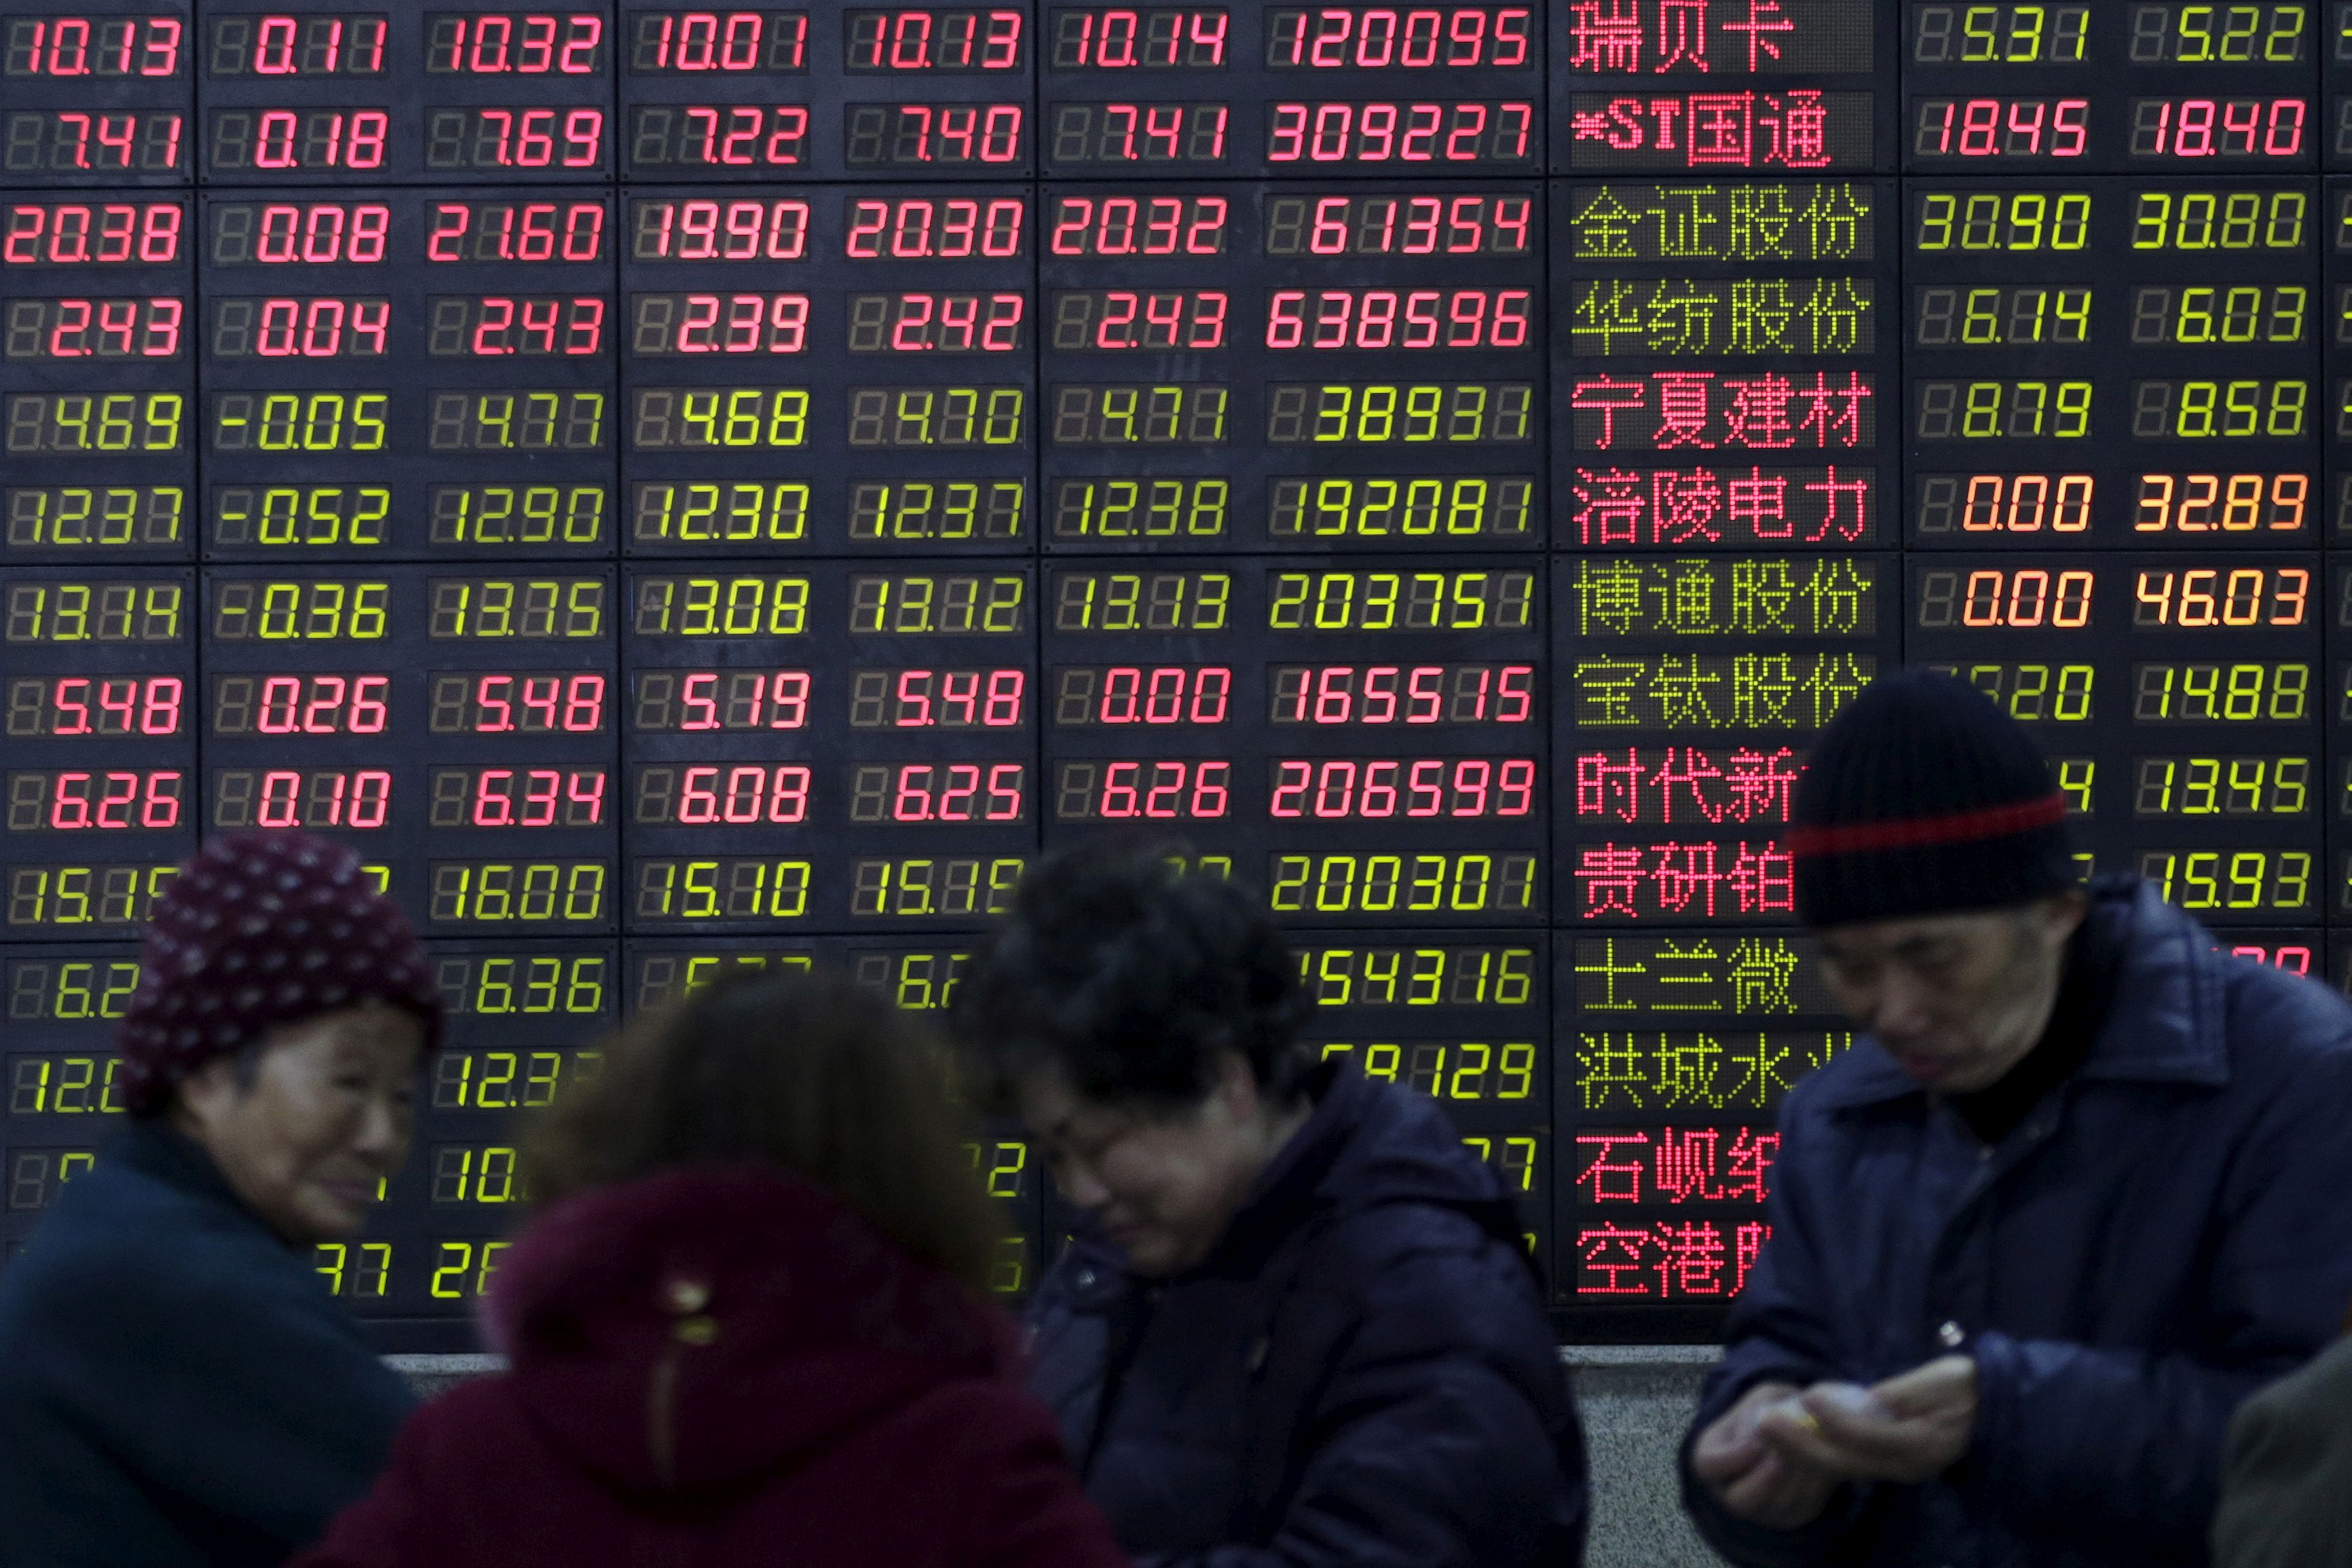 Investors stand in front of an electronic board showing stock information on the first trading day after the week-long Lunar New Year holiday at a brokerage house in Shanghai, China, February 15, 2016. REUTERS/Aly Song/File Photo